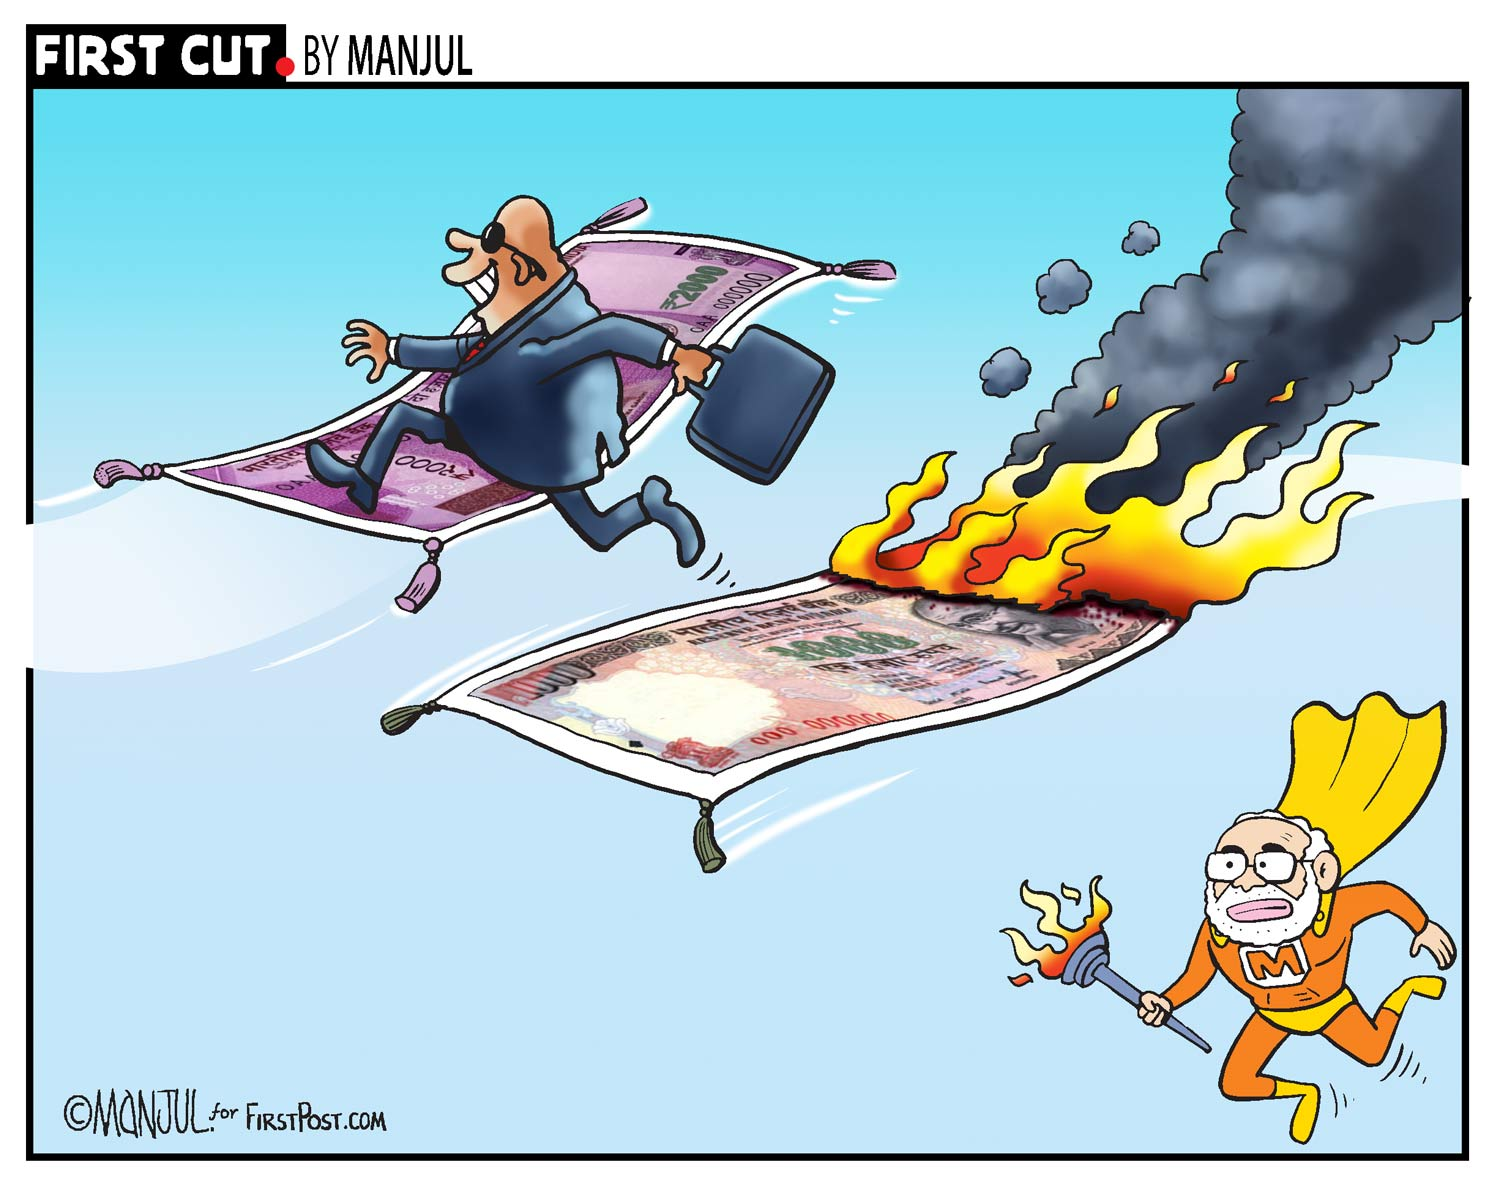 FirstCutByManjul31082017